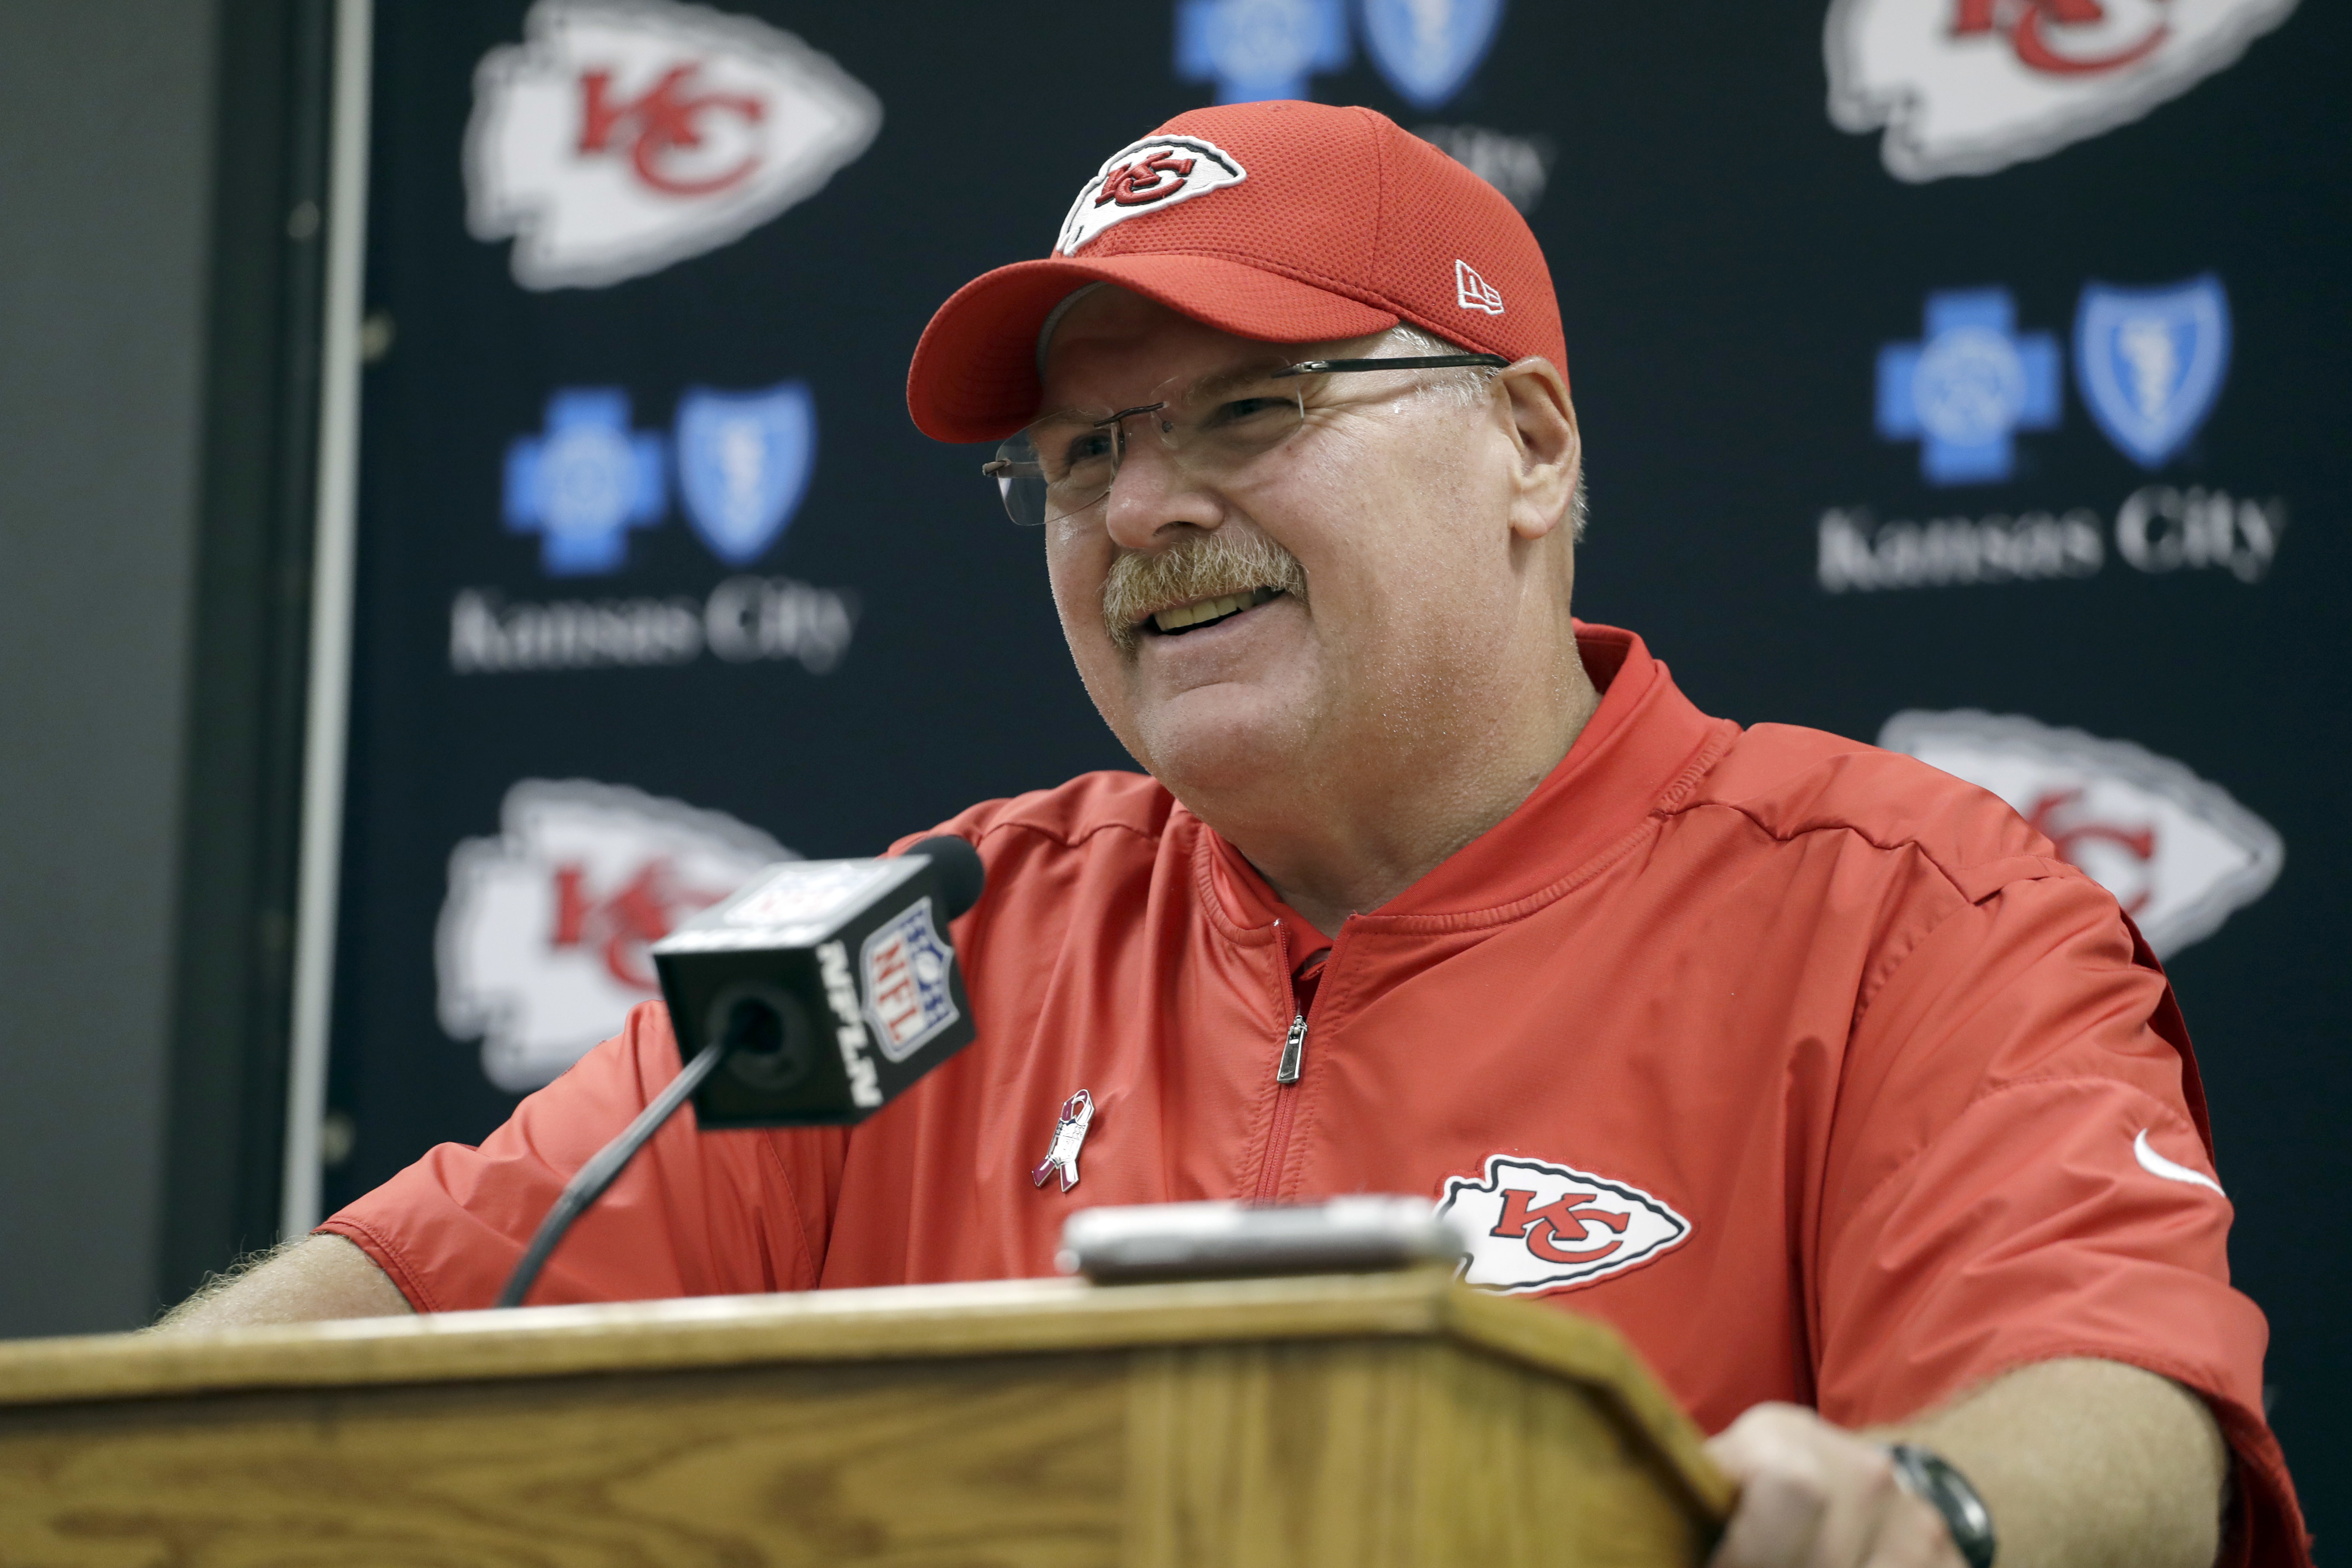 FILE - In this Oct. 23, 2016, file photo, Kansas City Chiefs head coach Andy Reid speaks during a news conference following an NFL football game against the New Orleans Saints, in Kansas City. Andy Reid has been around long enough to know that focusing on